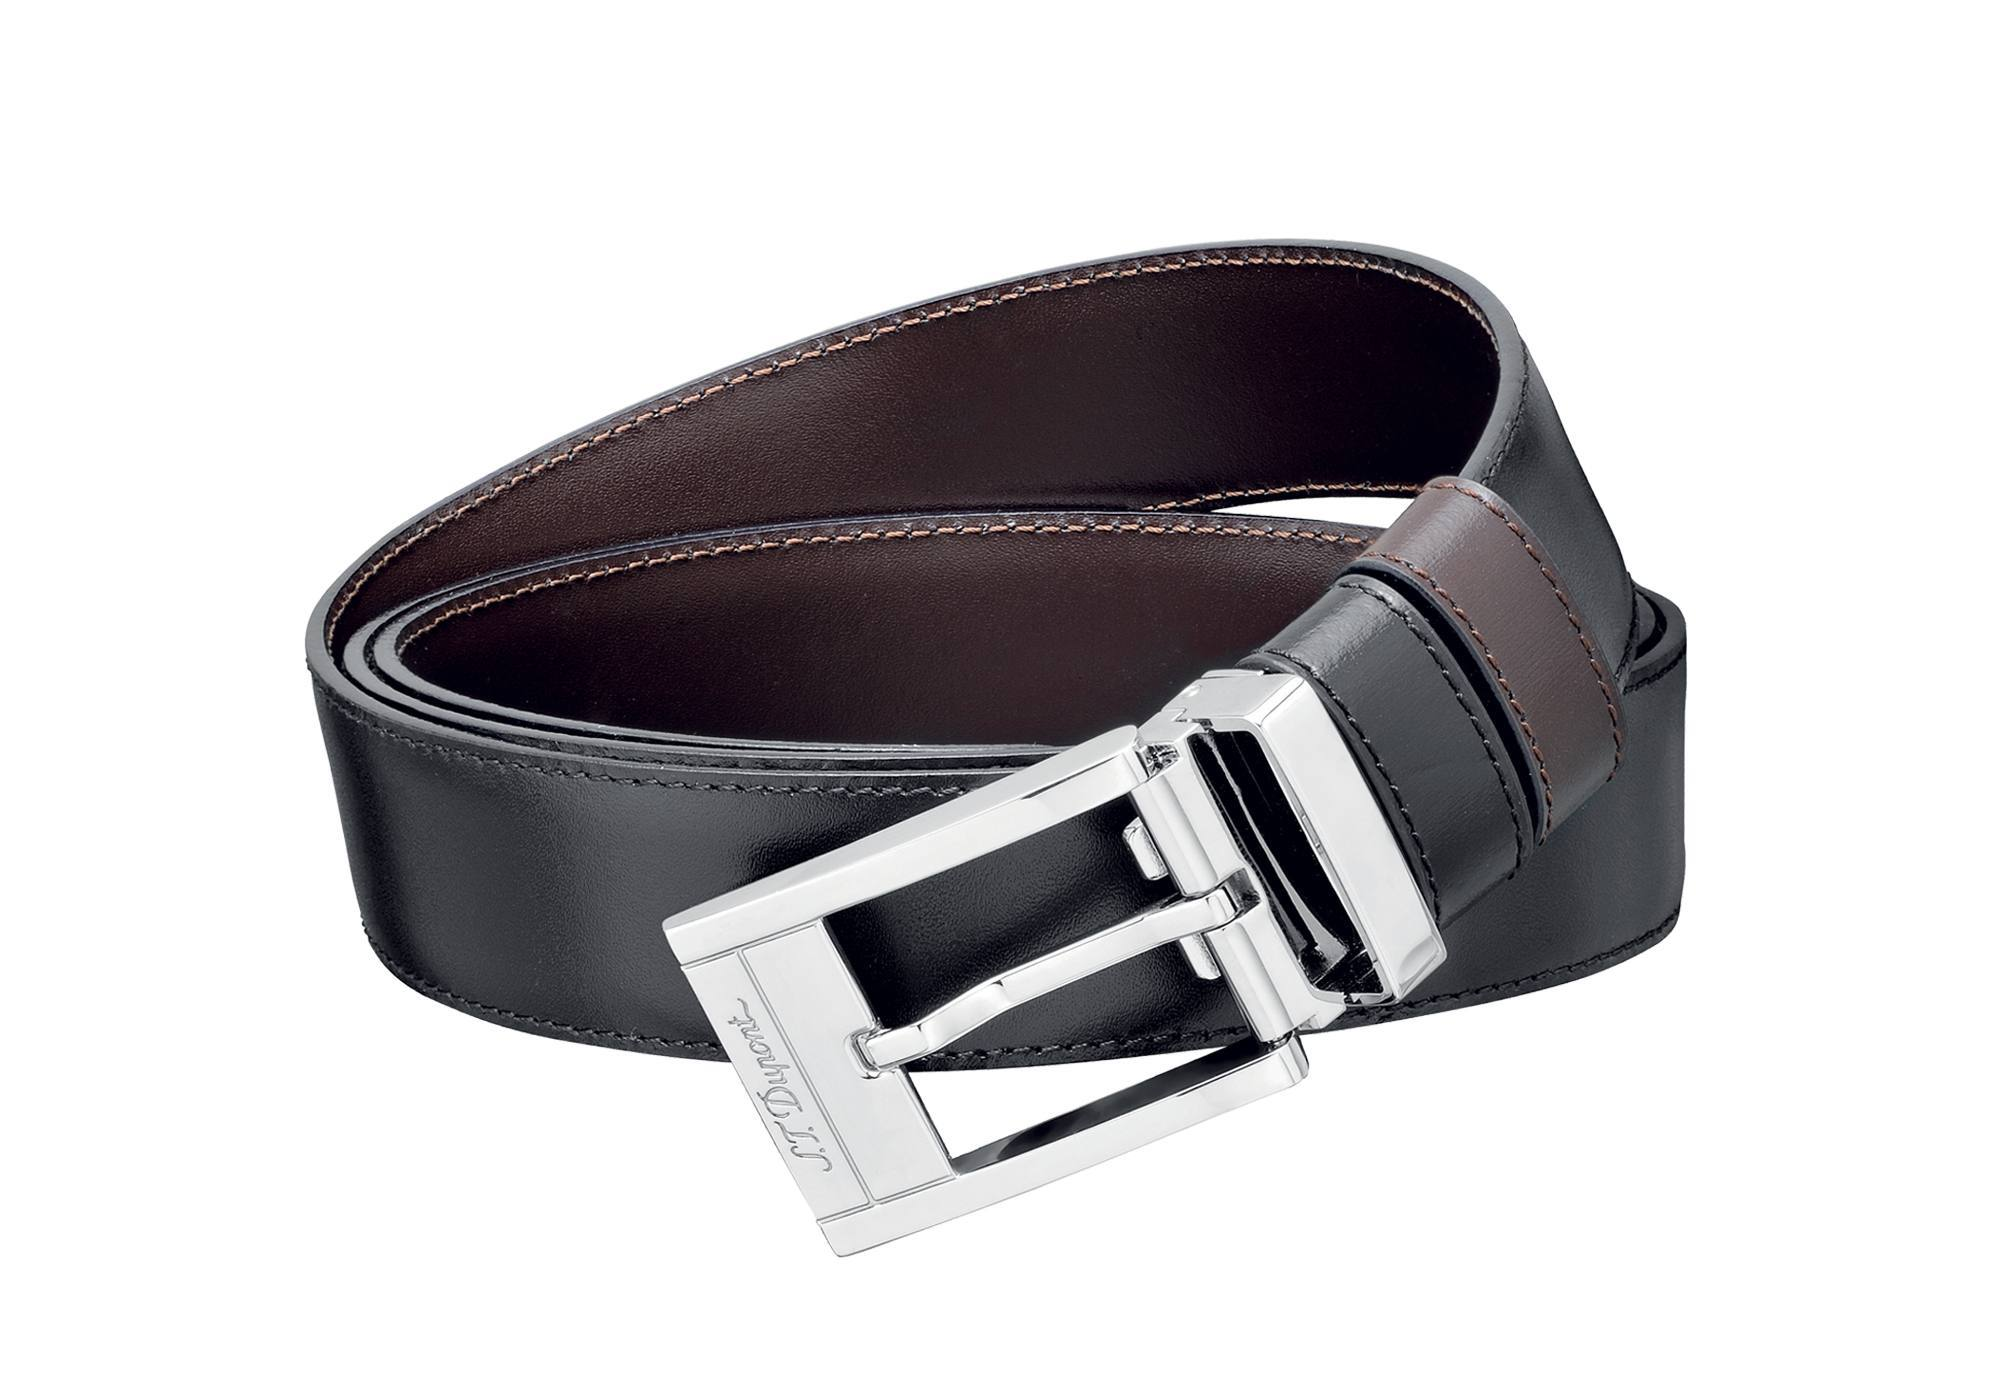 S.T. DUPONT PALLADIUM BELT